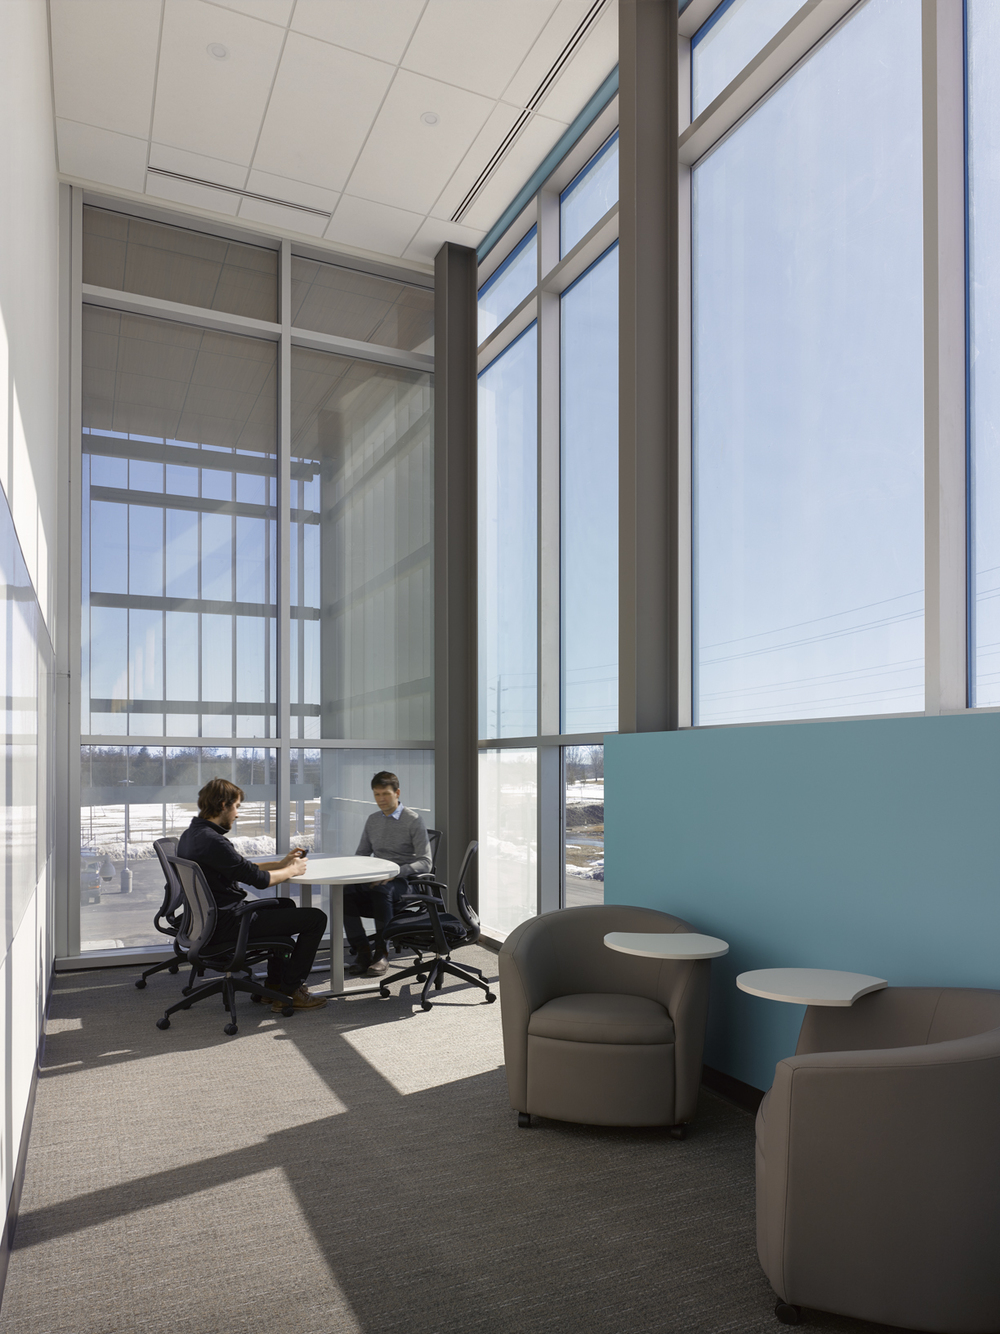 Hastings and Prince Edward Public Health Unit  Belleville, ON  Principal in Charge Kasian Architecture Ontario Inc.  2014